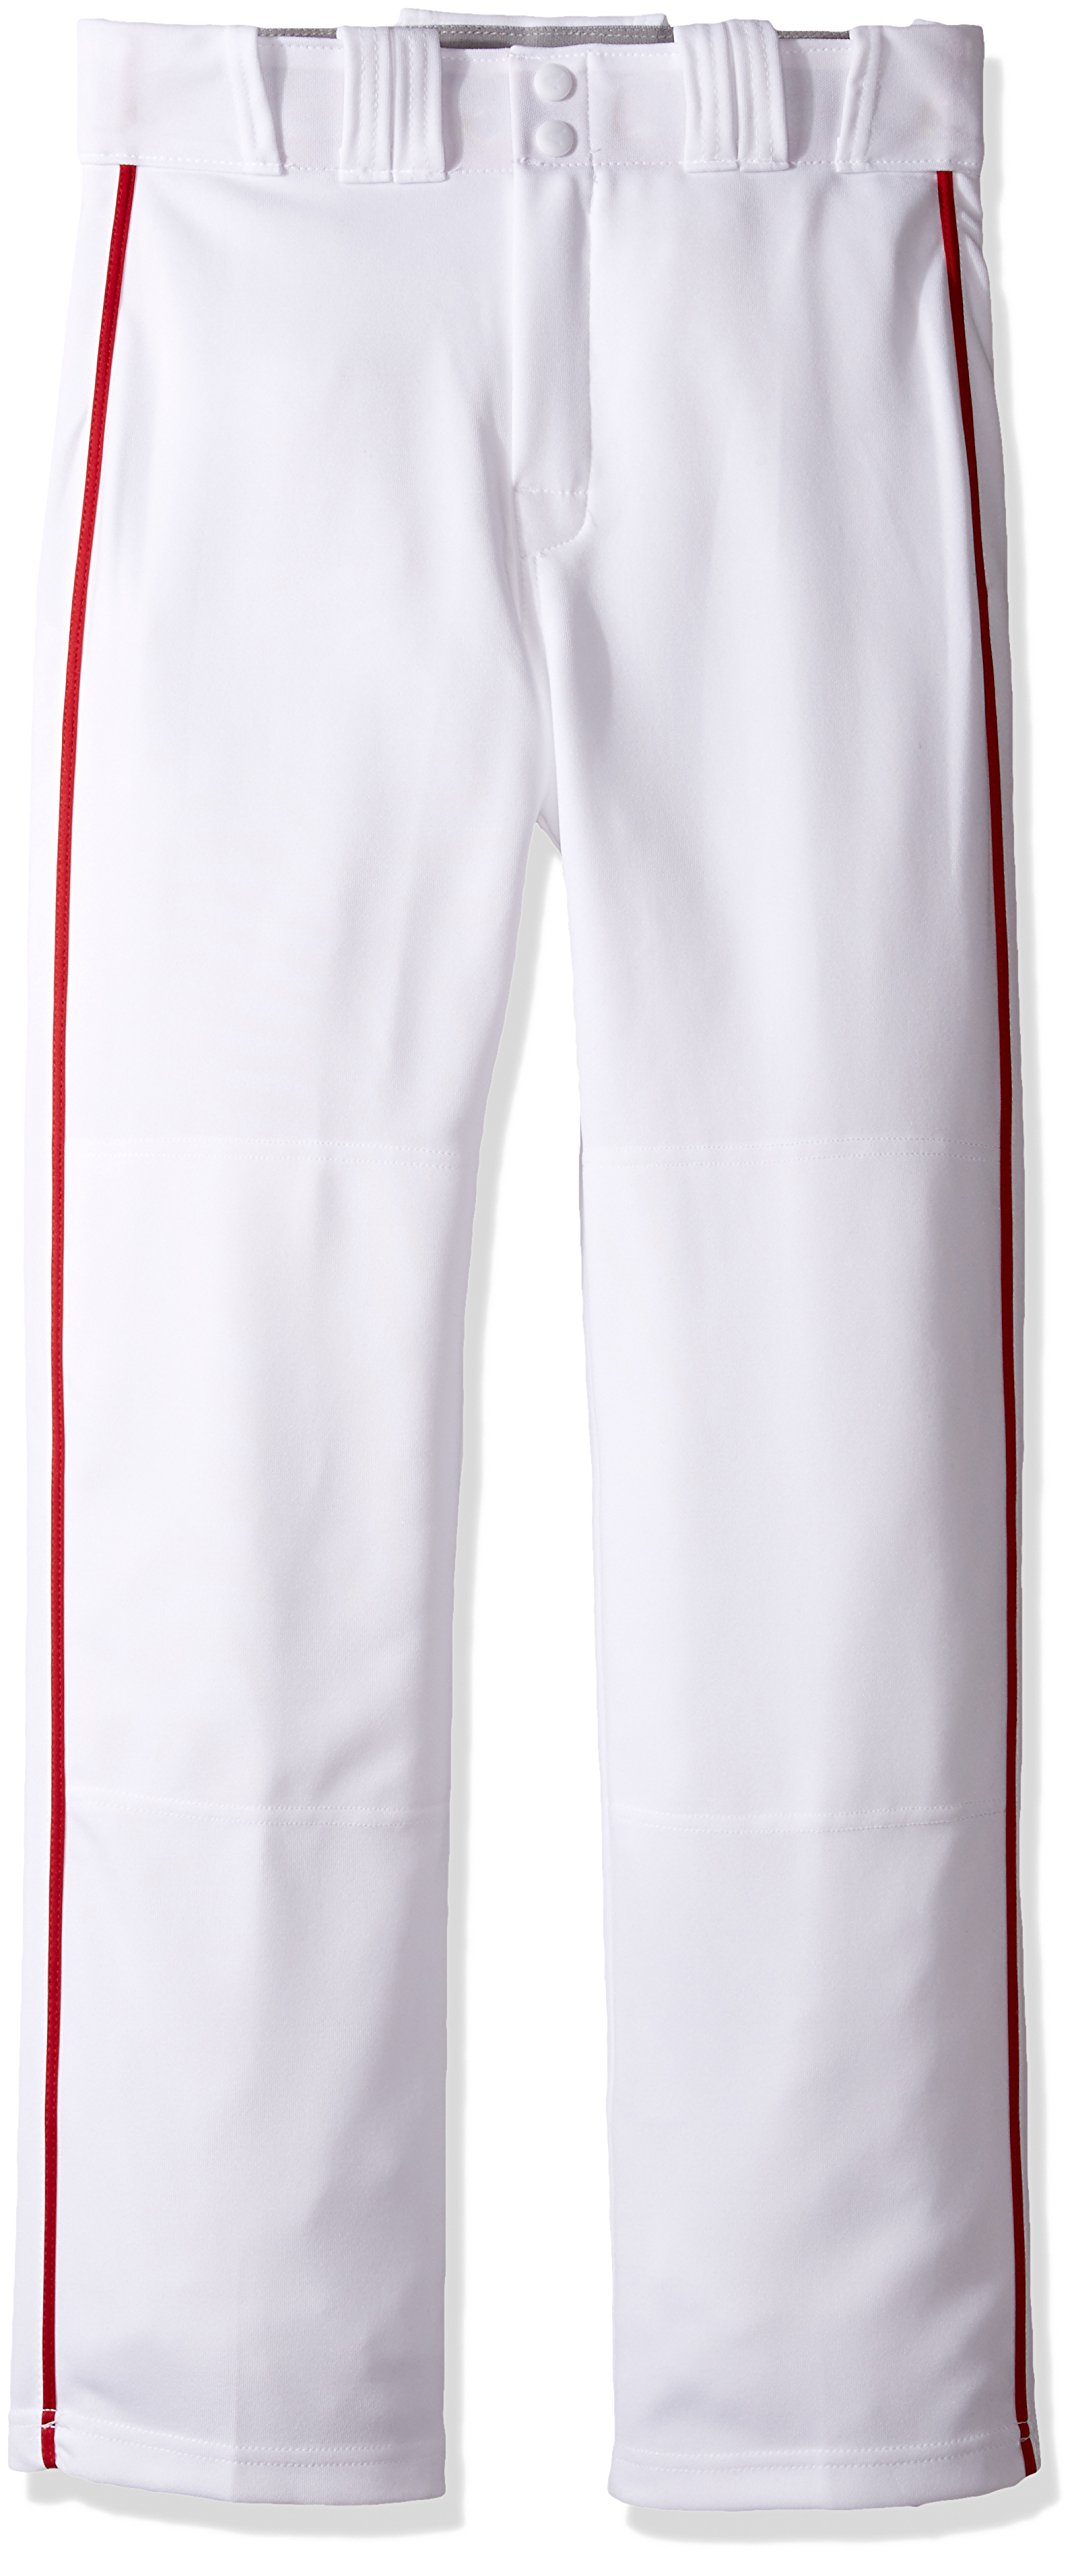 Easton Rival 2 Baseball Softball Pant | Youth | Small | White Red | 2020 | Double Reinforced Knee | Elastic Waistband w/ 2 Color Internal Logo | 2 Batting Glove Pockets | 100% Polyester